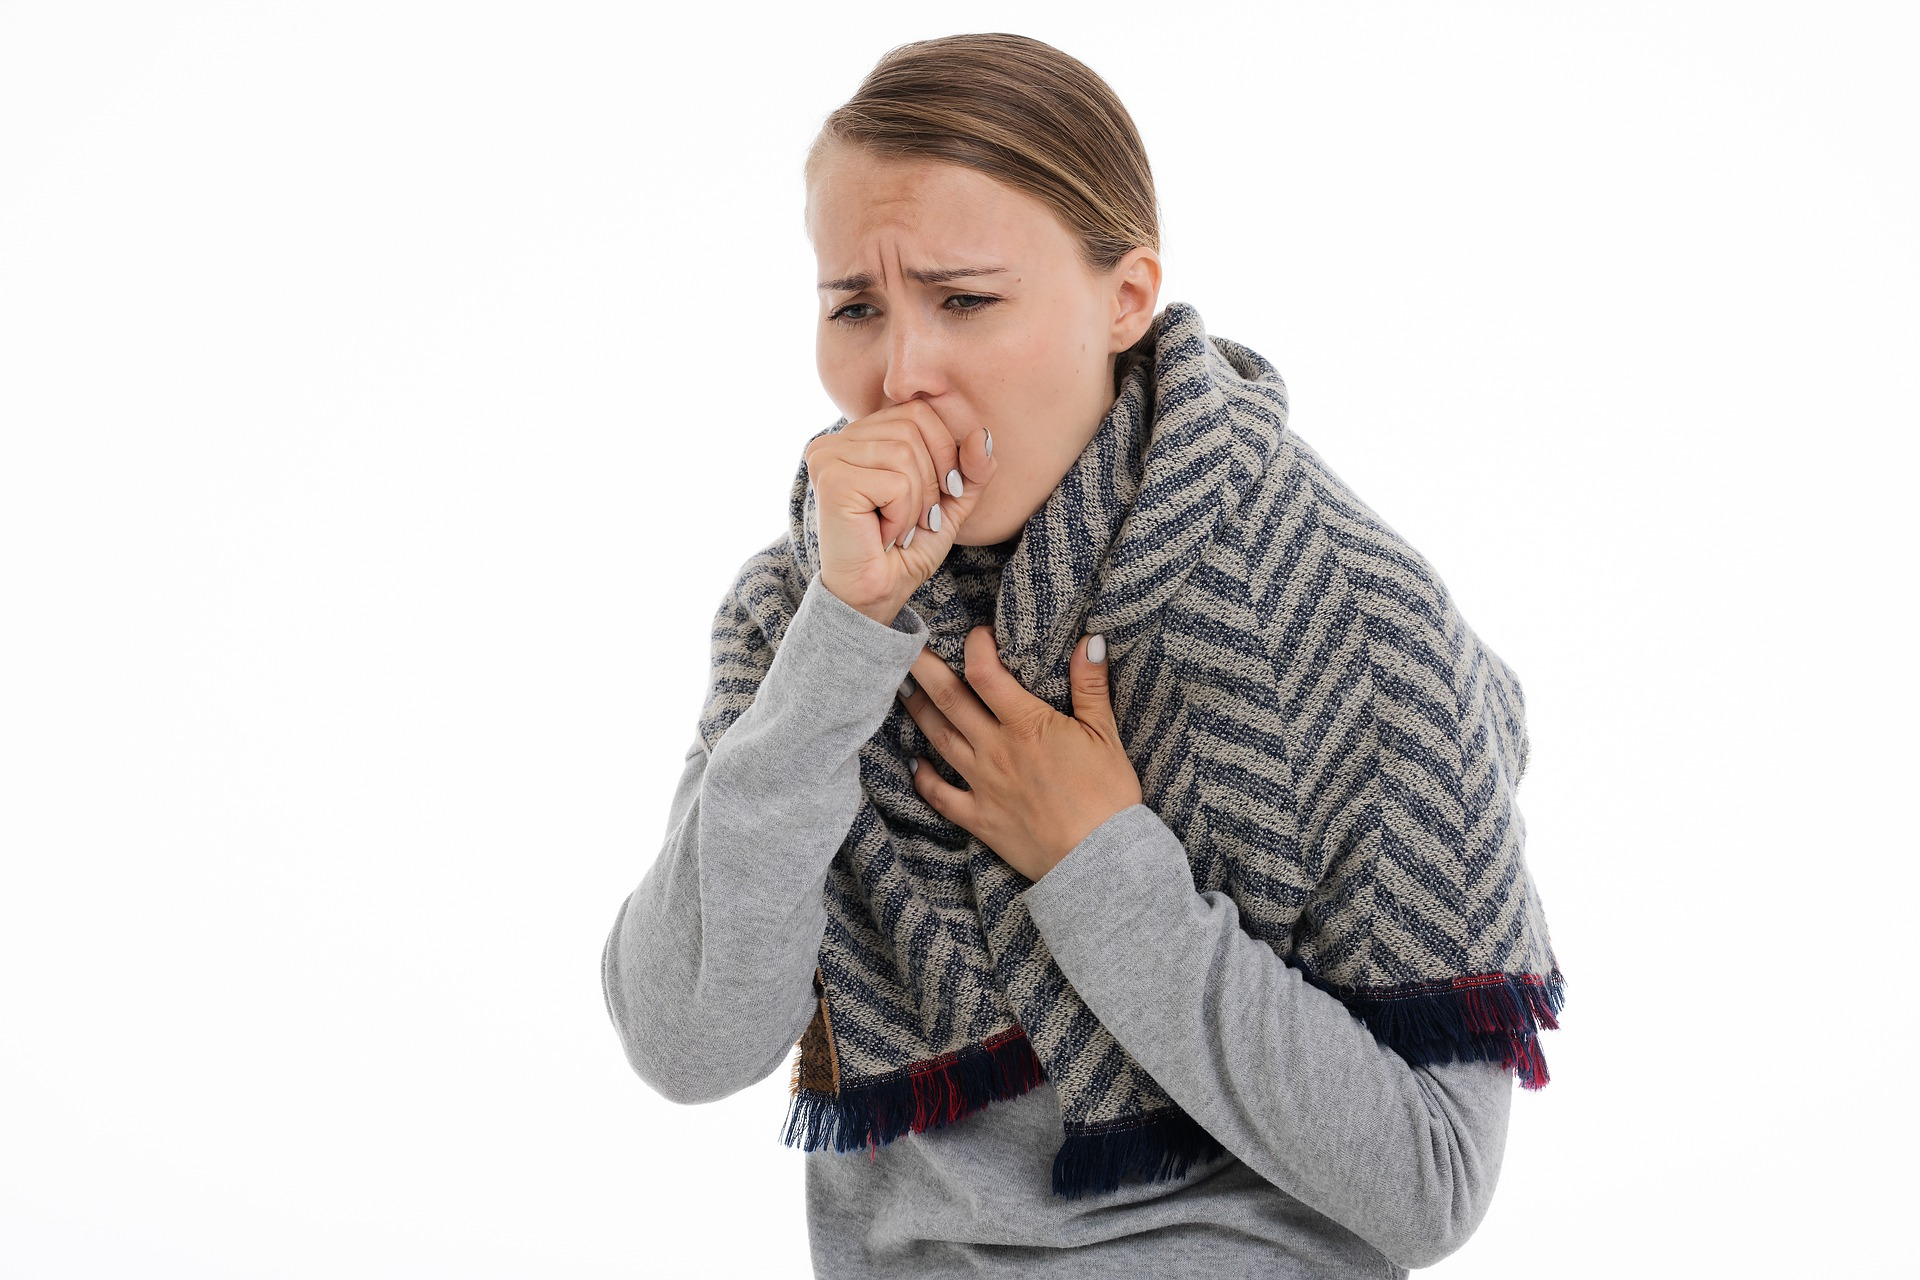 How to Fight Common Cold or Flu